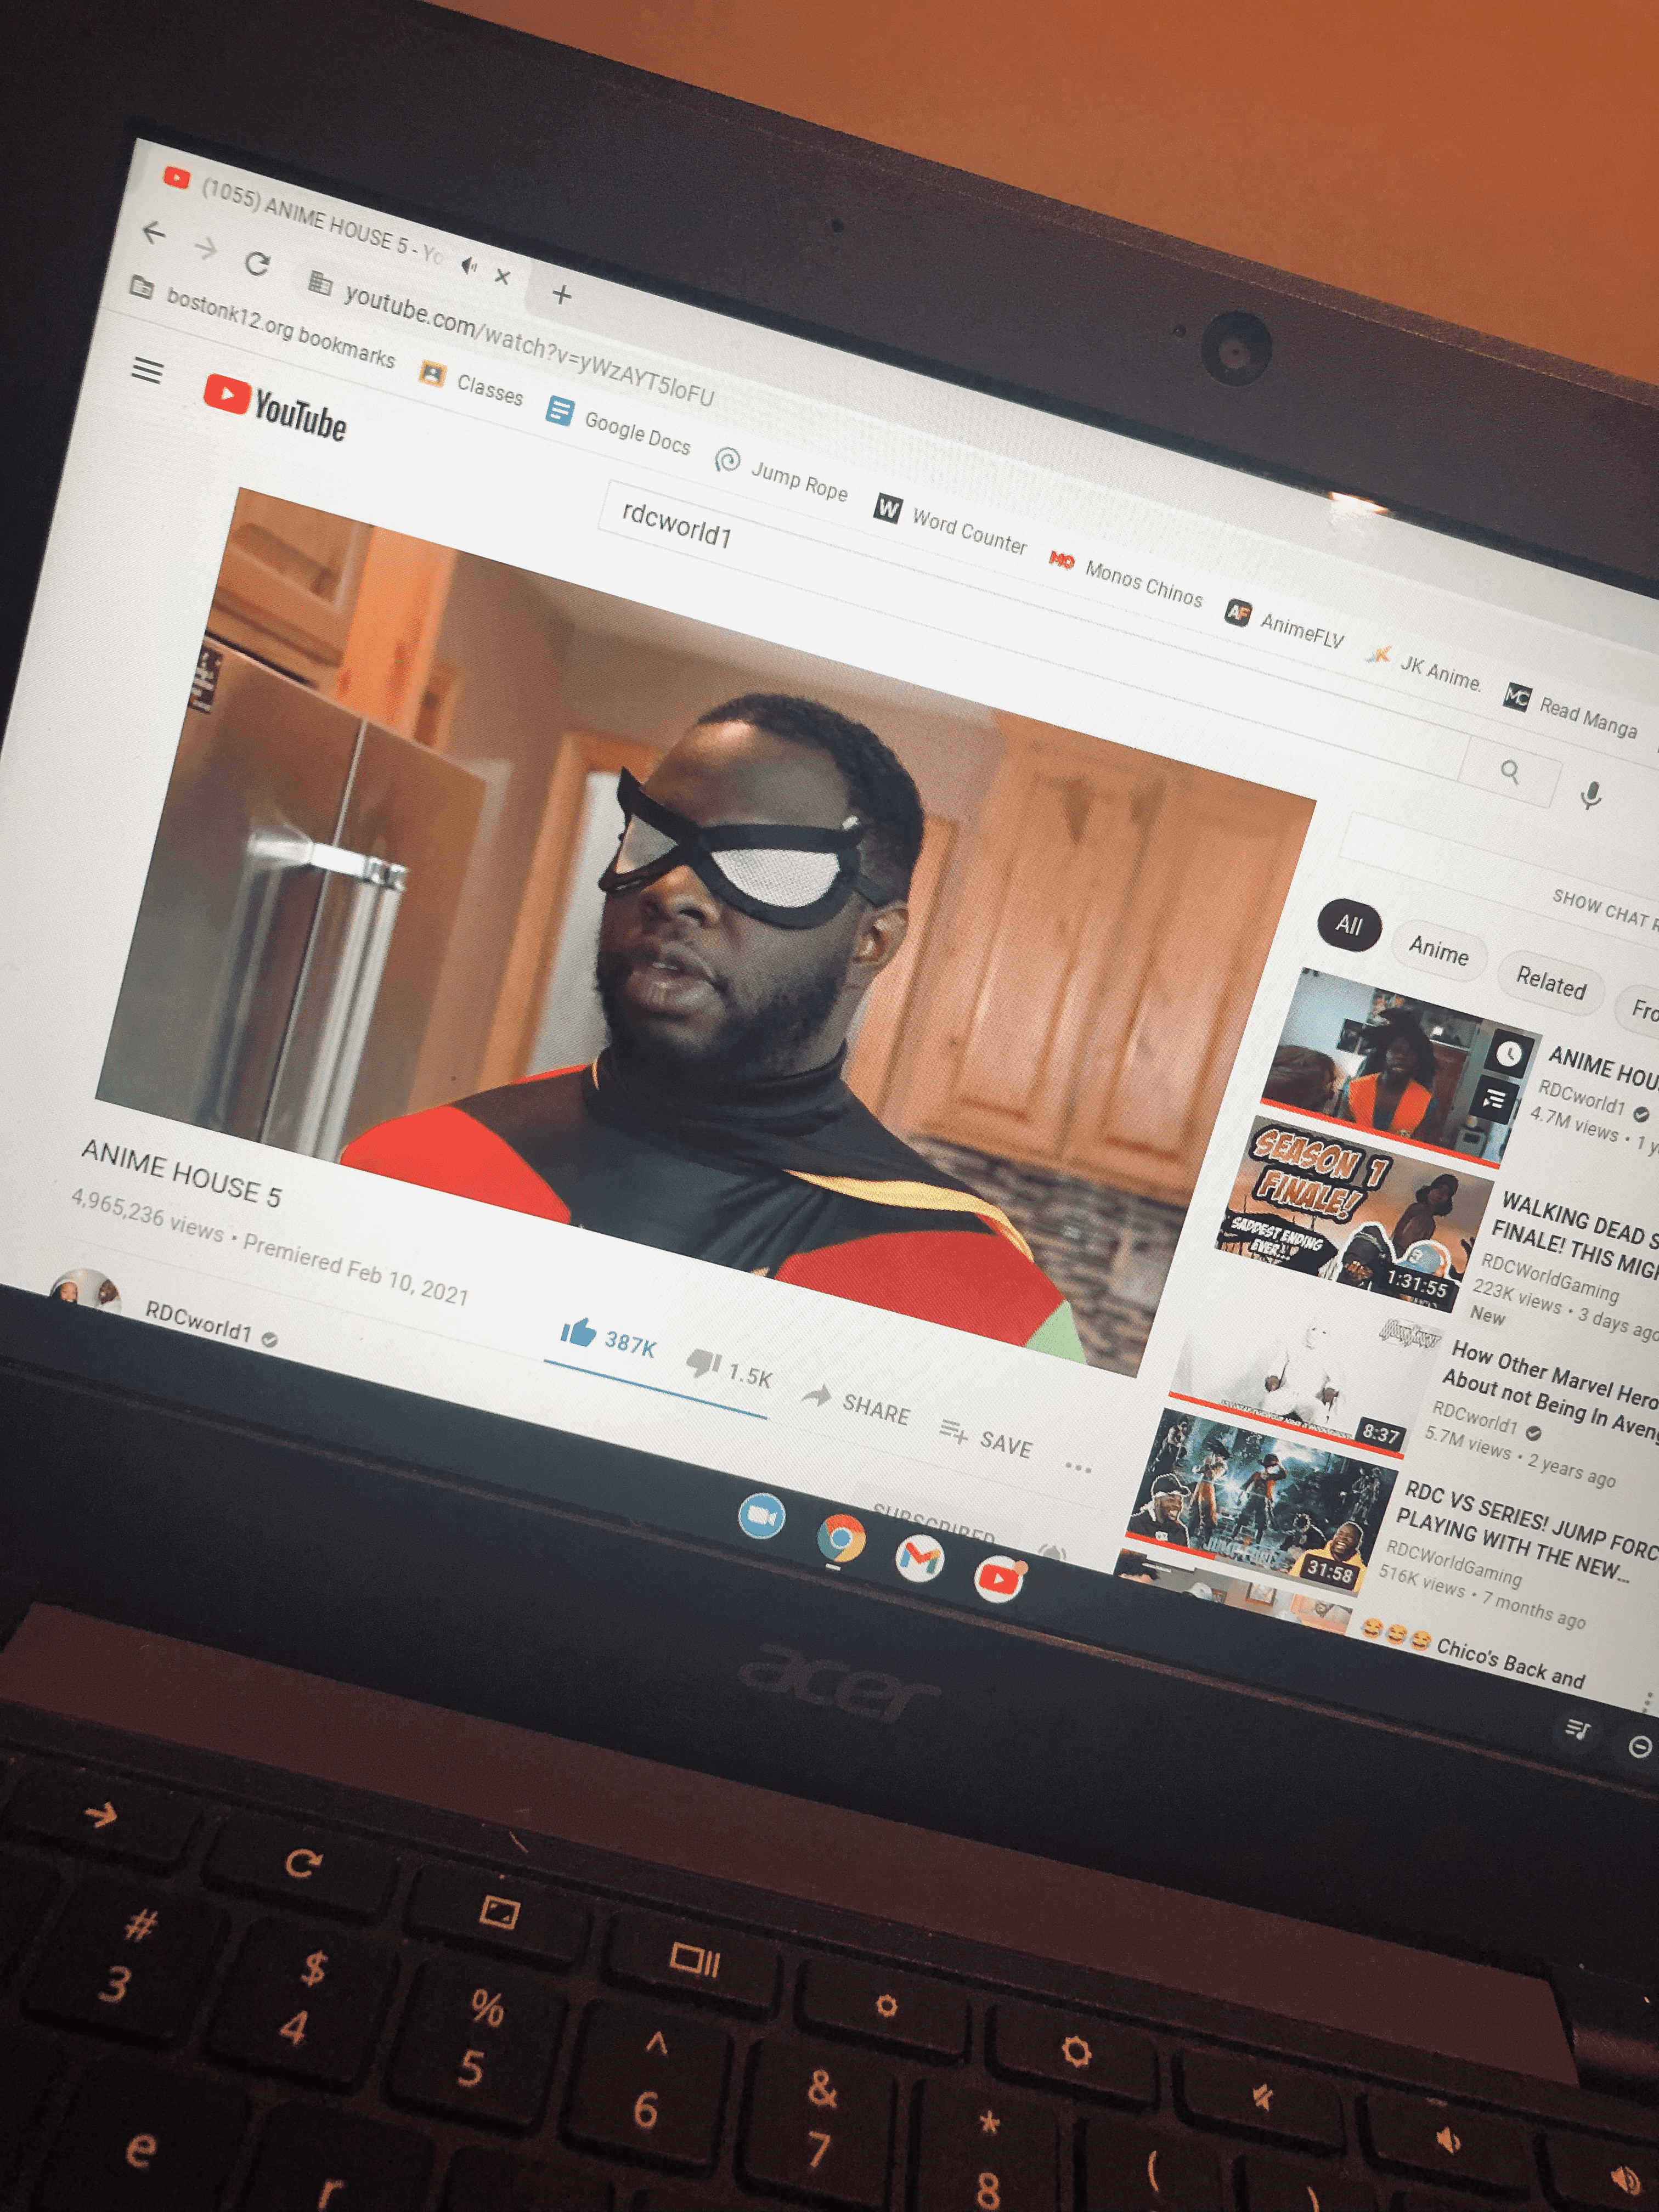 """Photo of a laptops web browser on YouTube watching a video created by RDCworld1 titled """"Anime House 5."""" Photo courtesy of the author."""